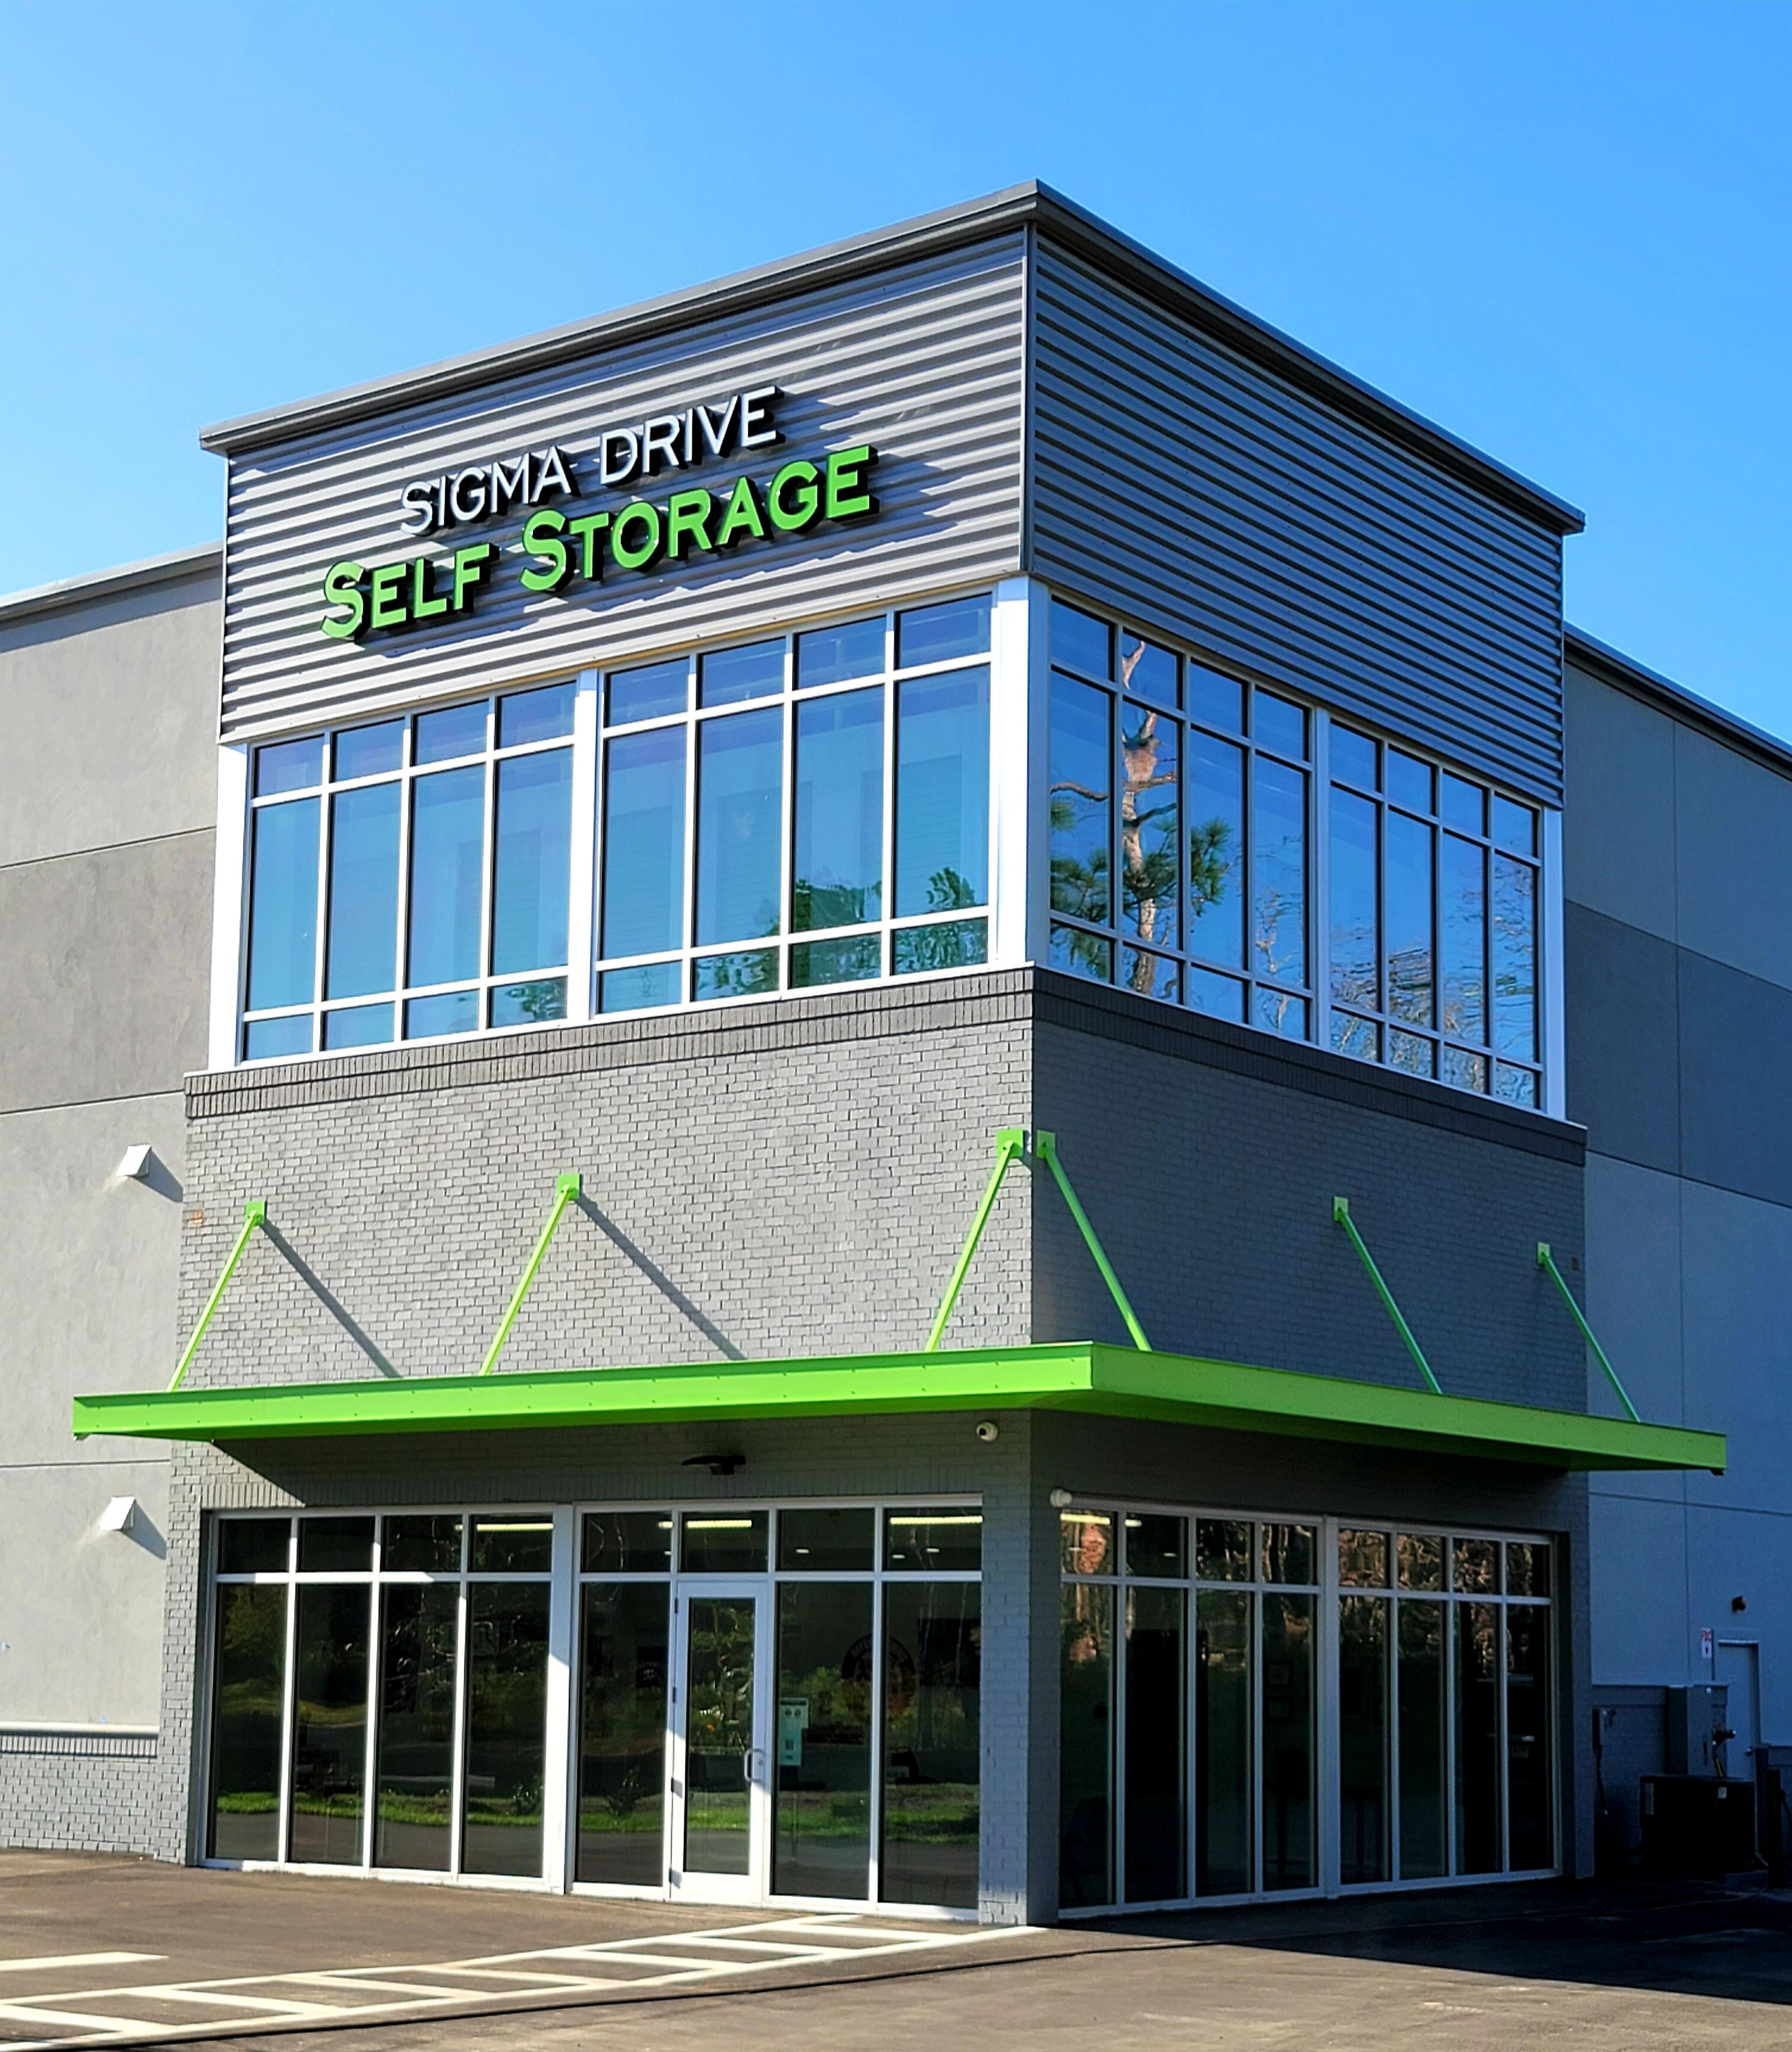 New Self Storage Facility Opened in Summerville, South Carolina